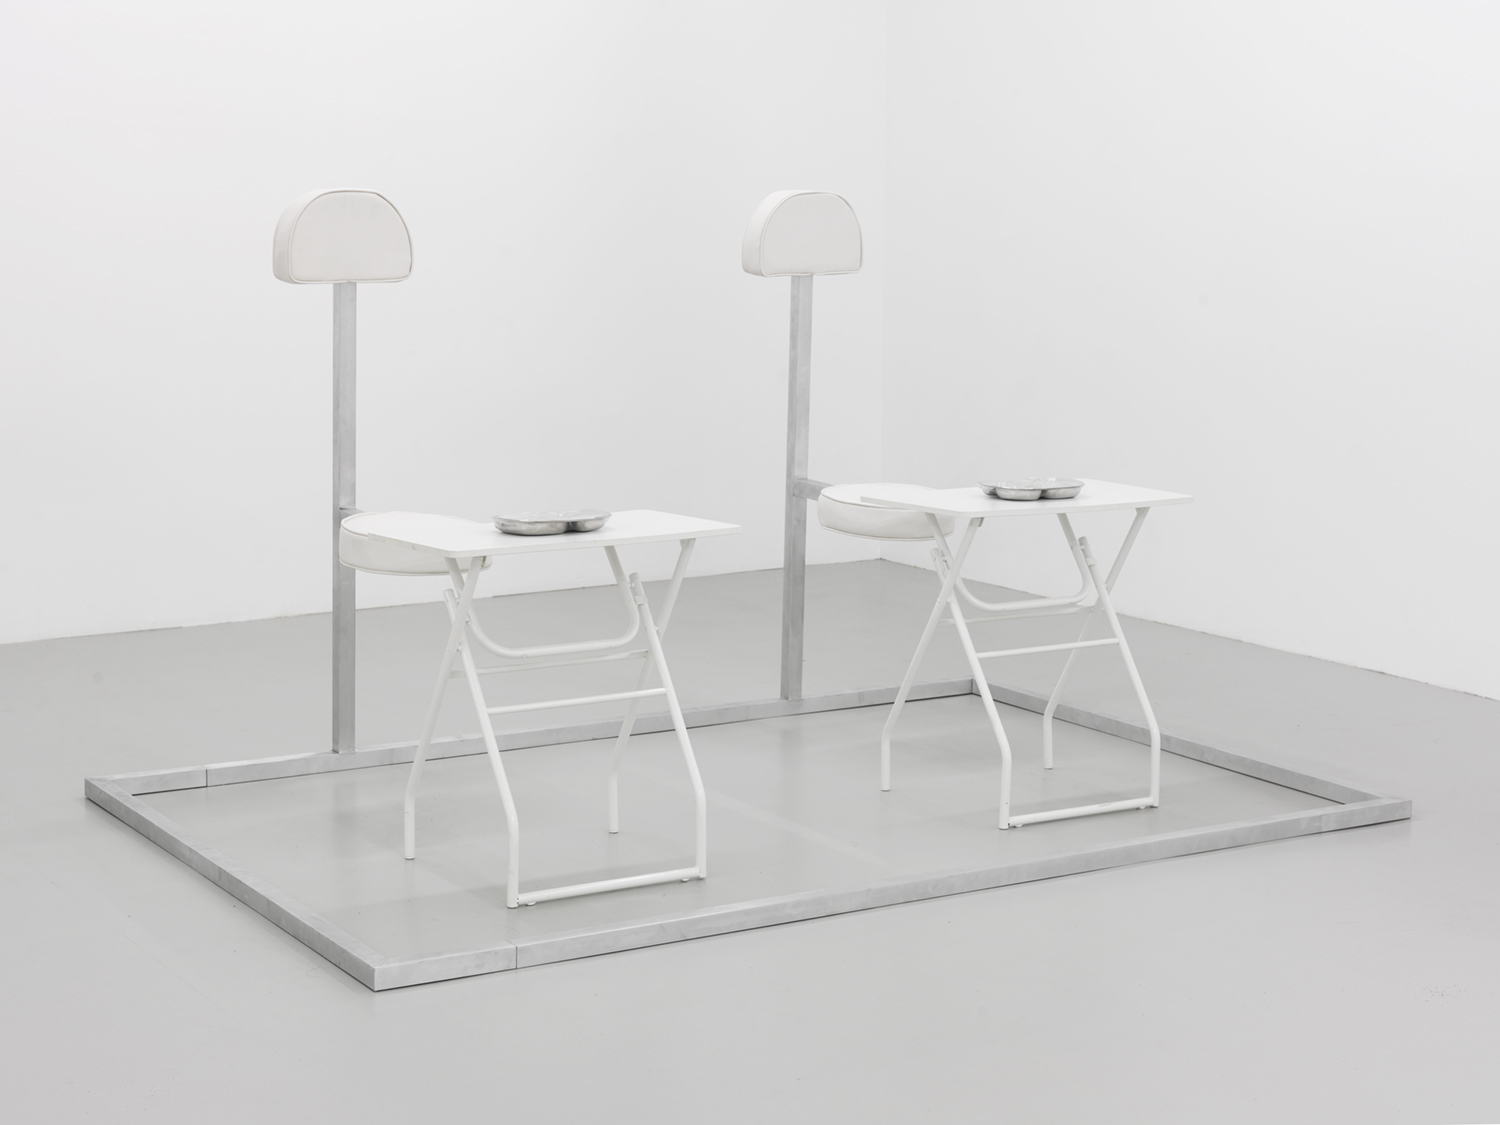 Movie and Dinner For Two (groupon) , 2015 Aluminum, leather, foam, stainless steel, rubber, wood and resin 53 x 92 x 60 inches